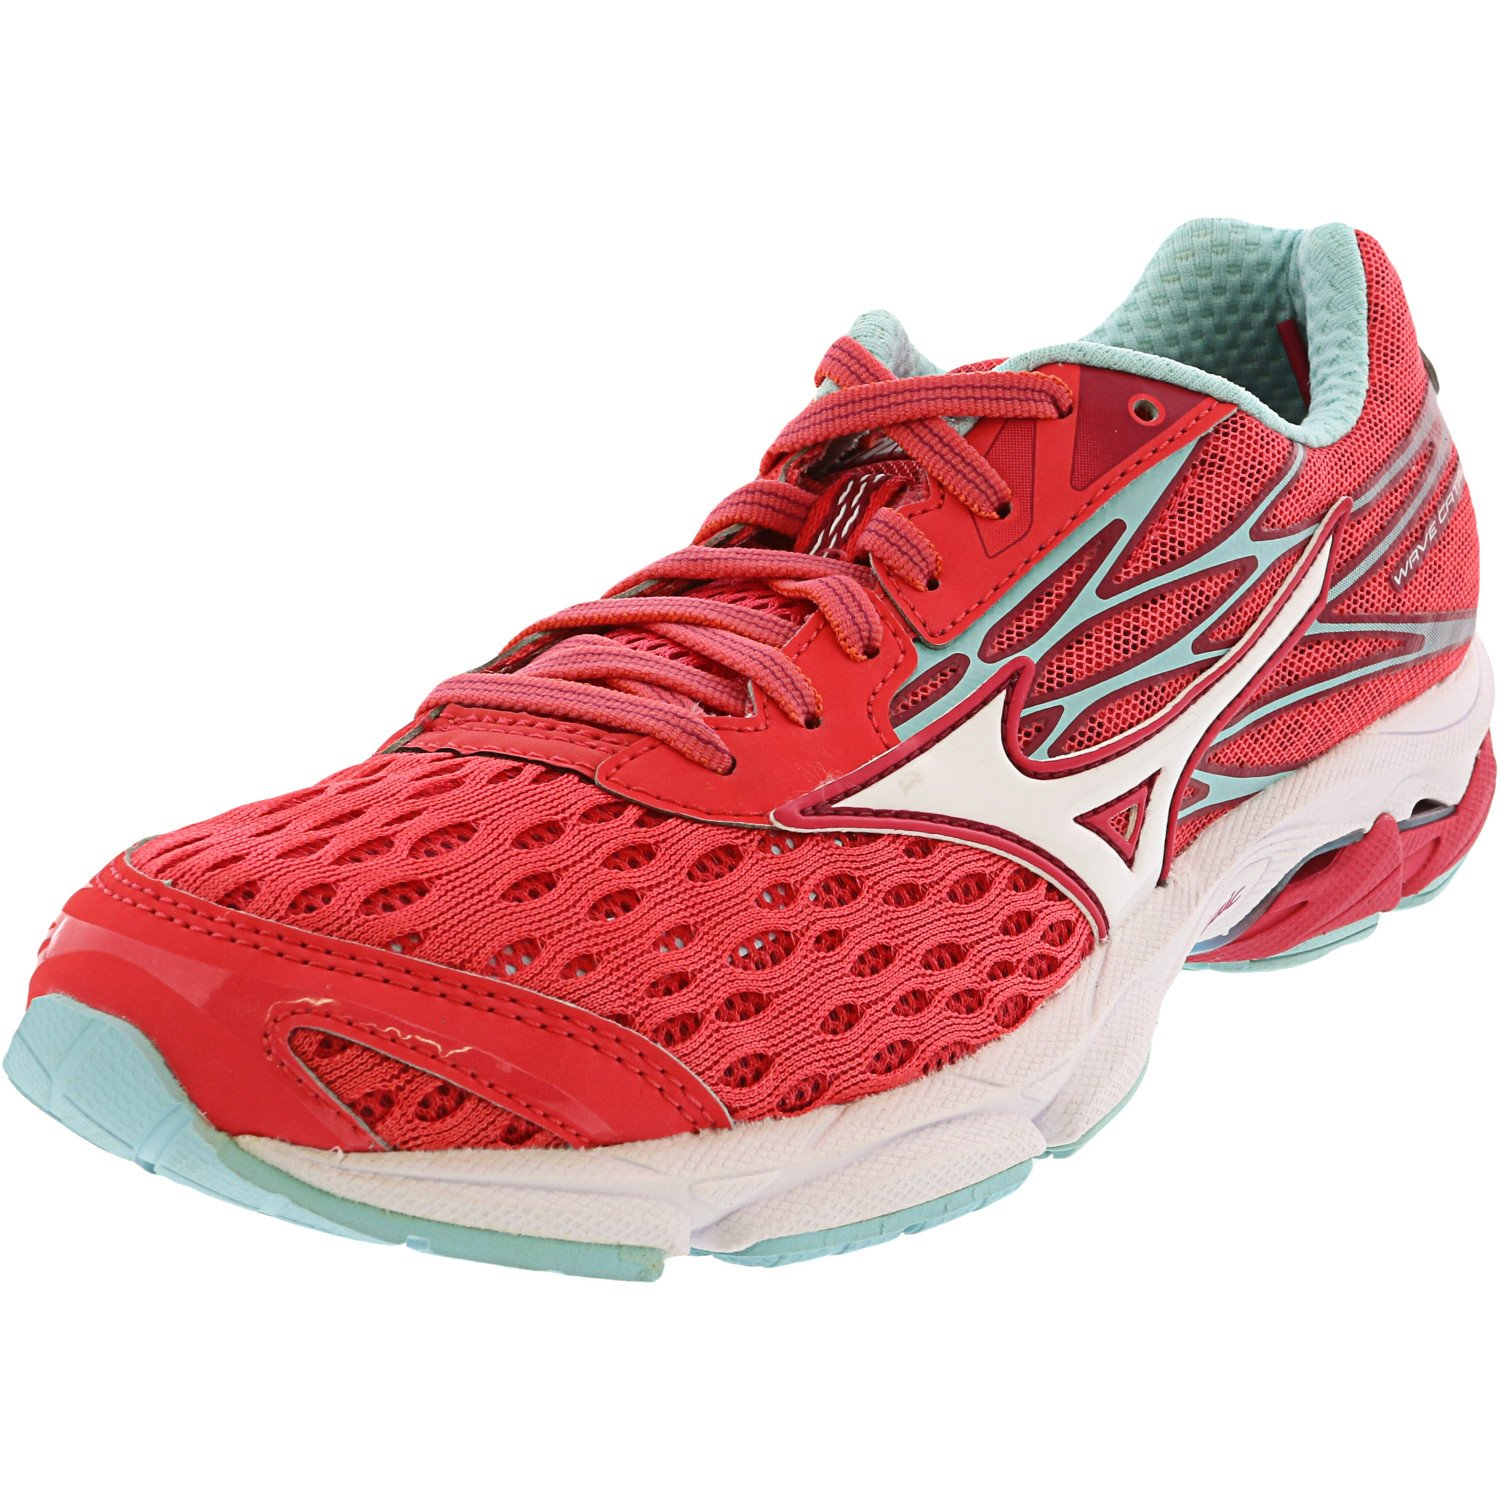 Wave Catalyst 2 Running Shoes - 6.5M